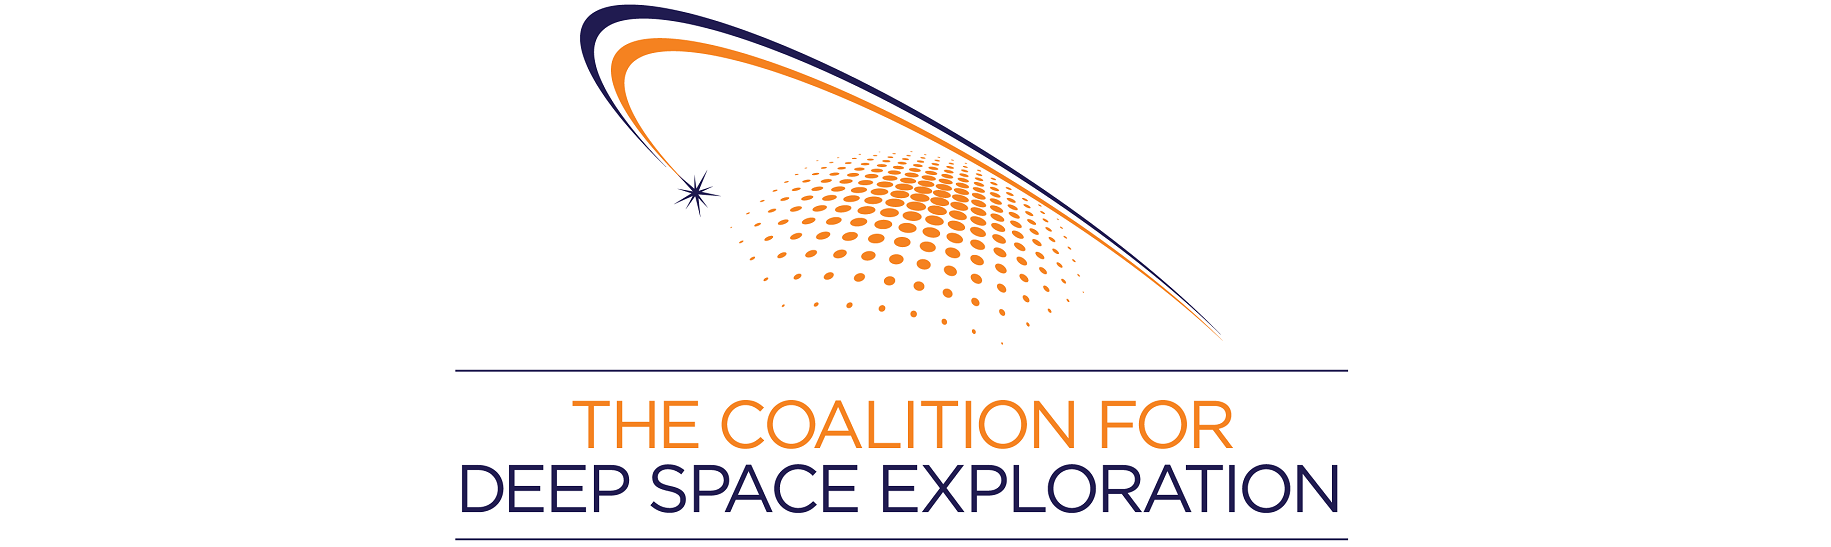 Coalition for Deep Space Exploration logo